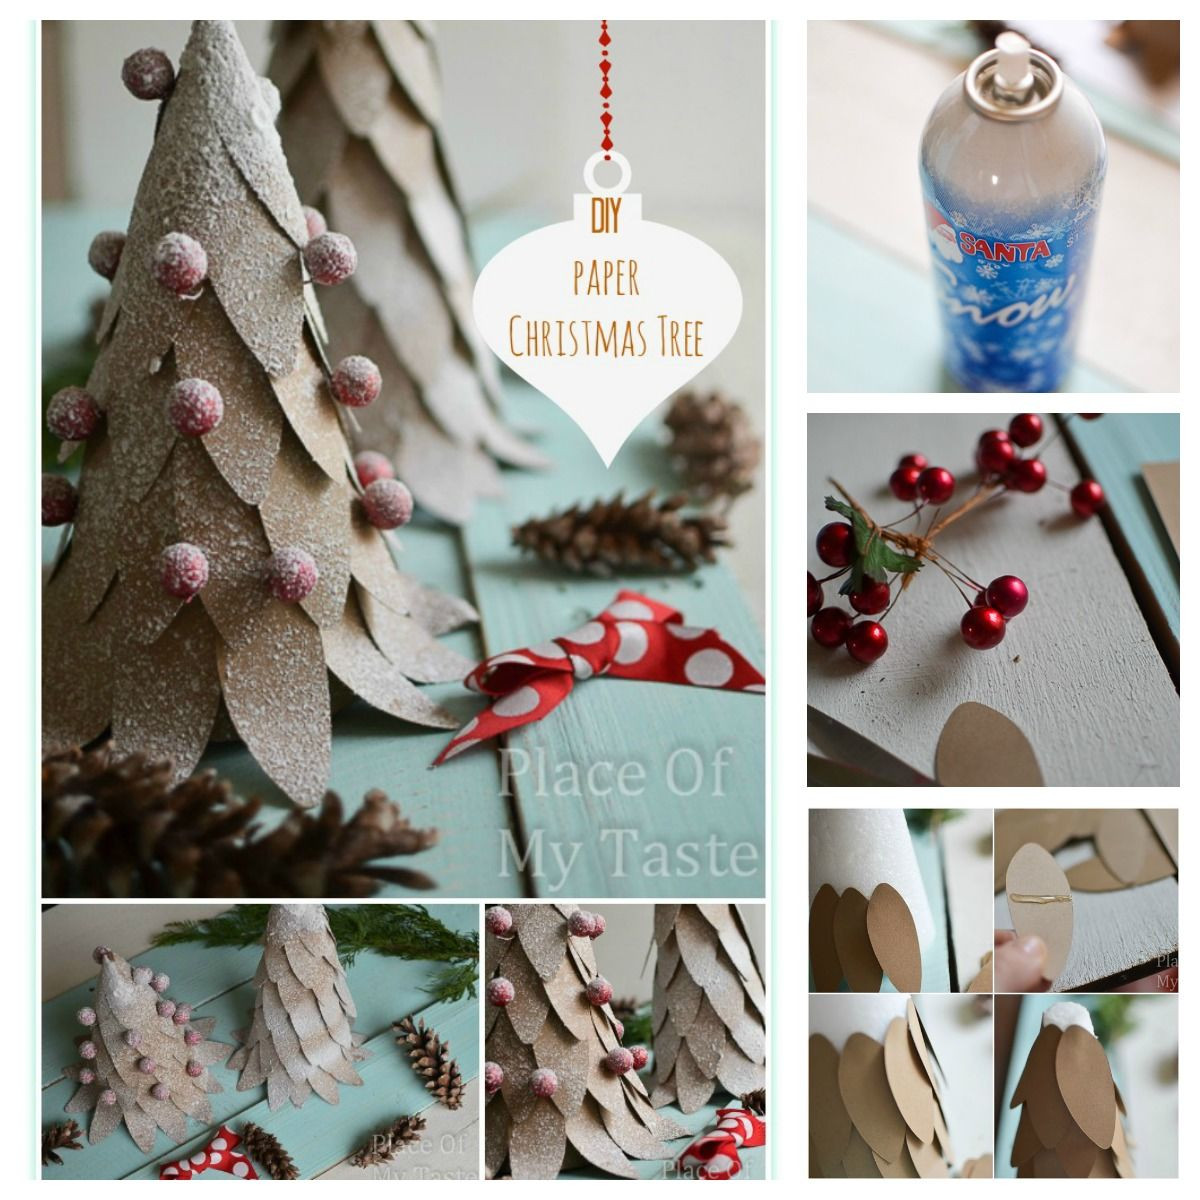 Best ideas about DIY Christmas Crafts . Save or Pin DIY Paper Christmas Tree Craft s and Now.